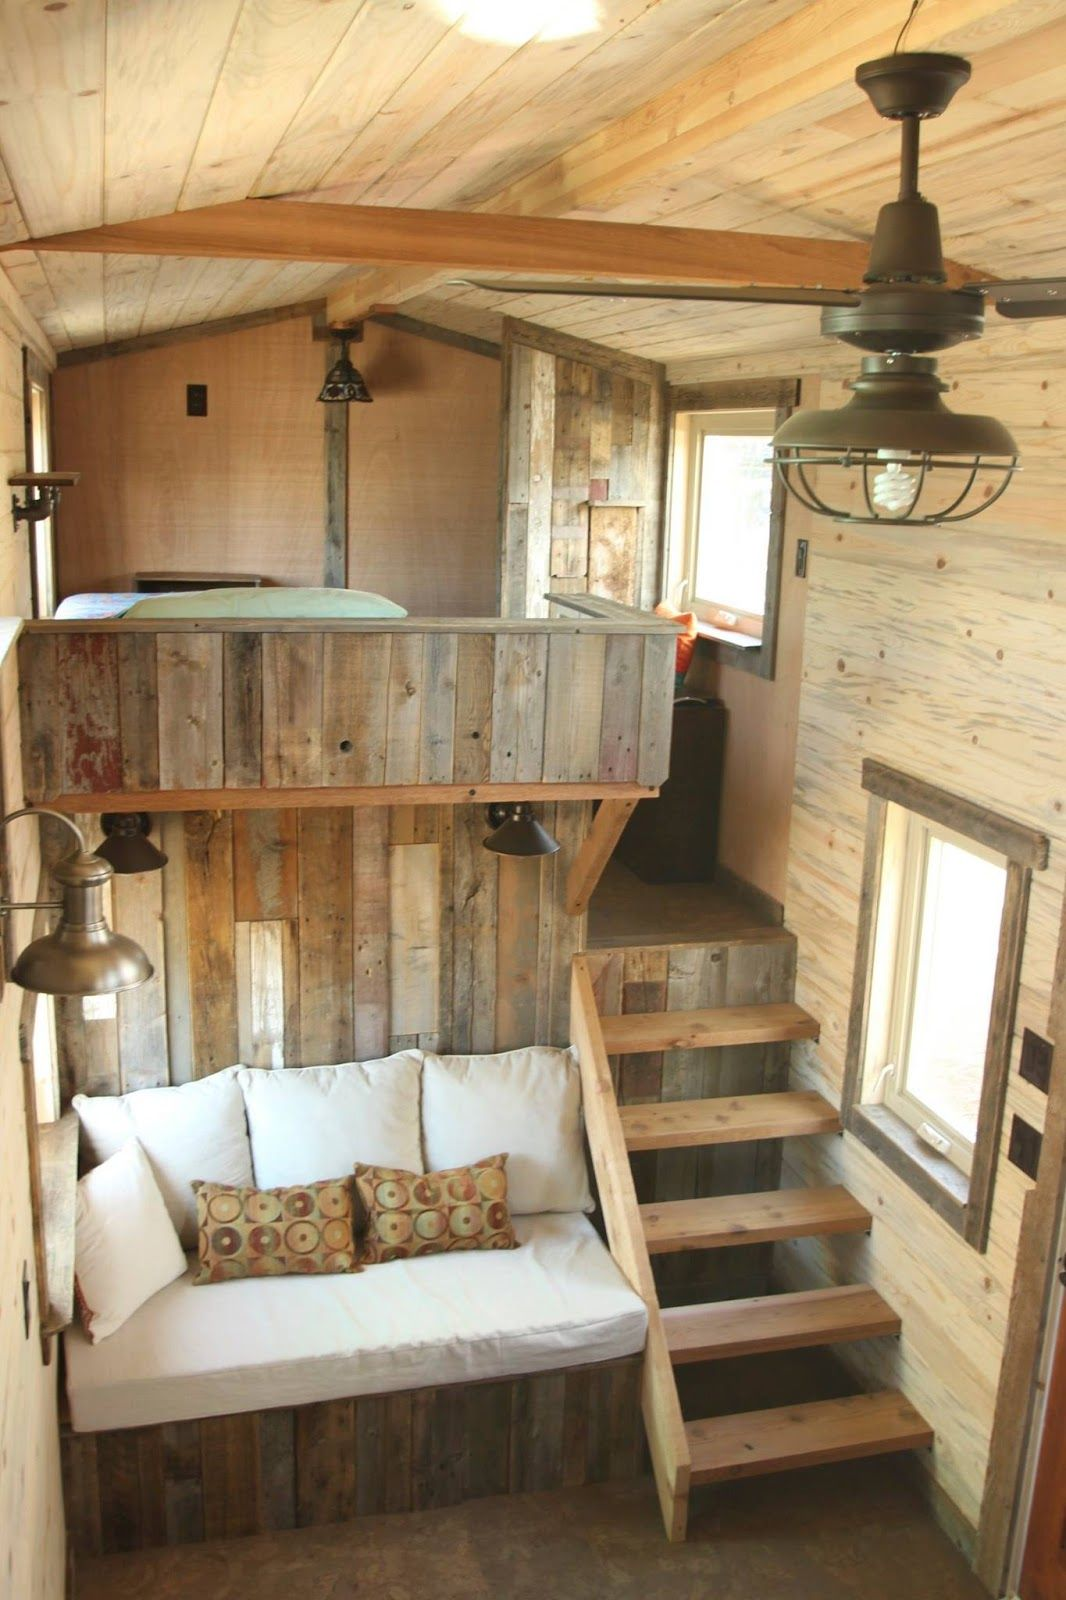 5+ Tiny House Designs 2019 Plan Designs Around The World